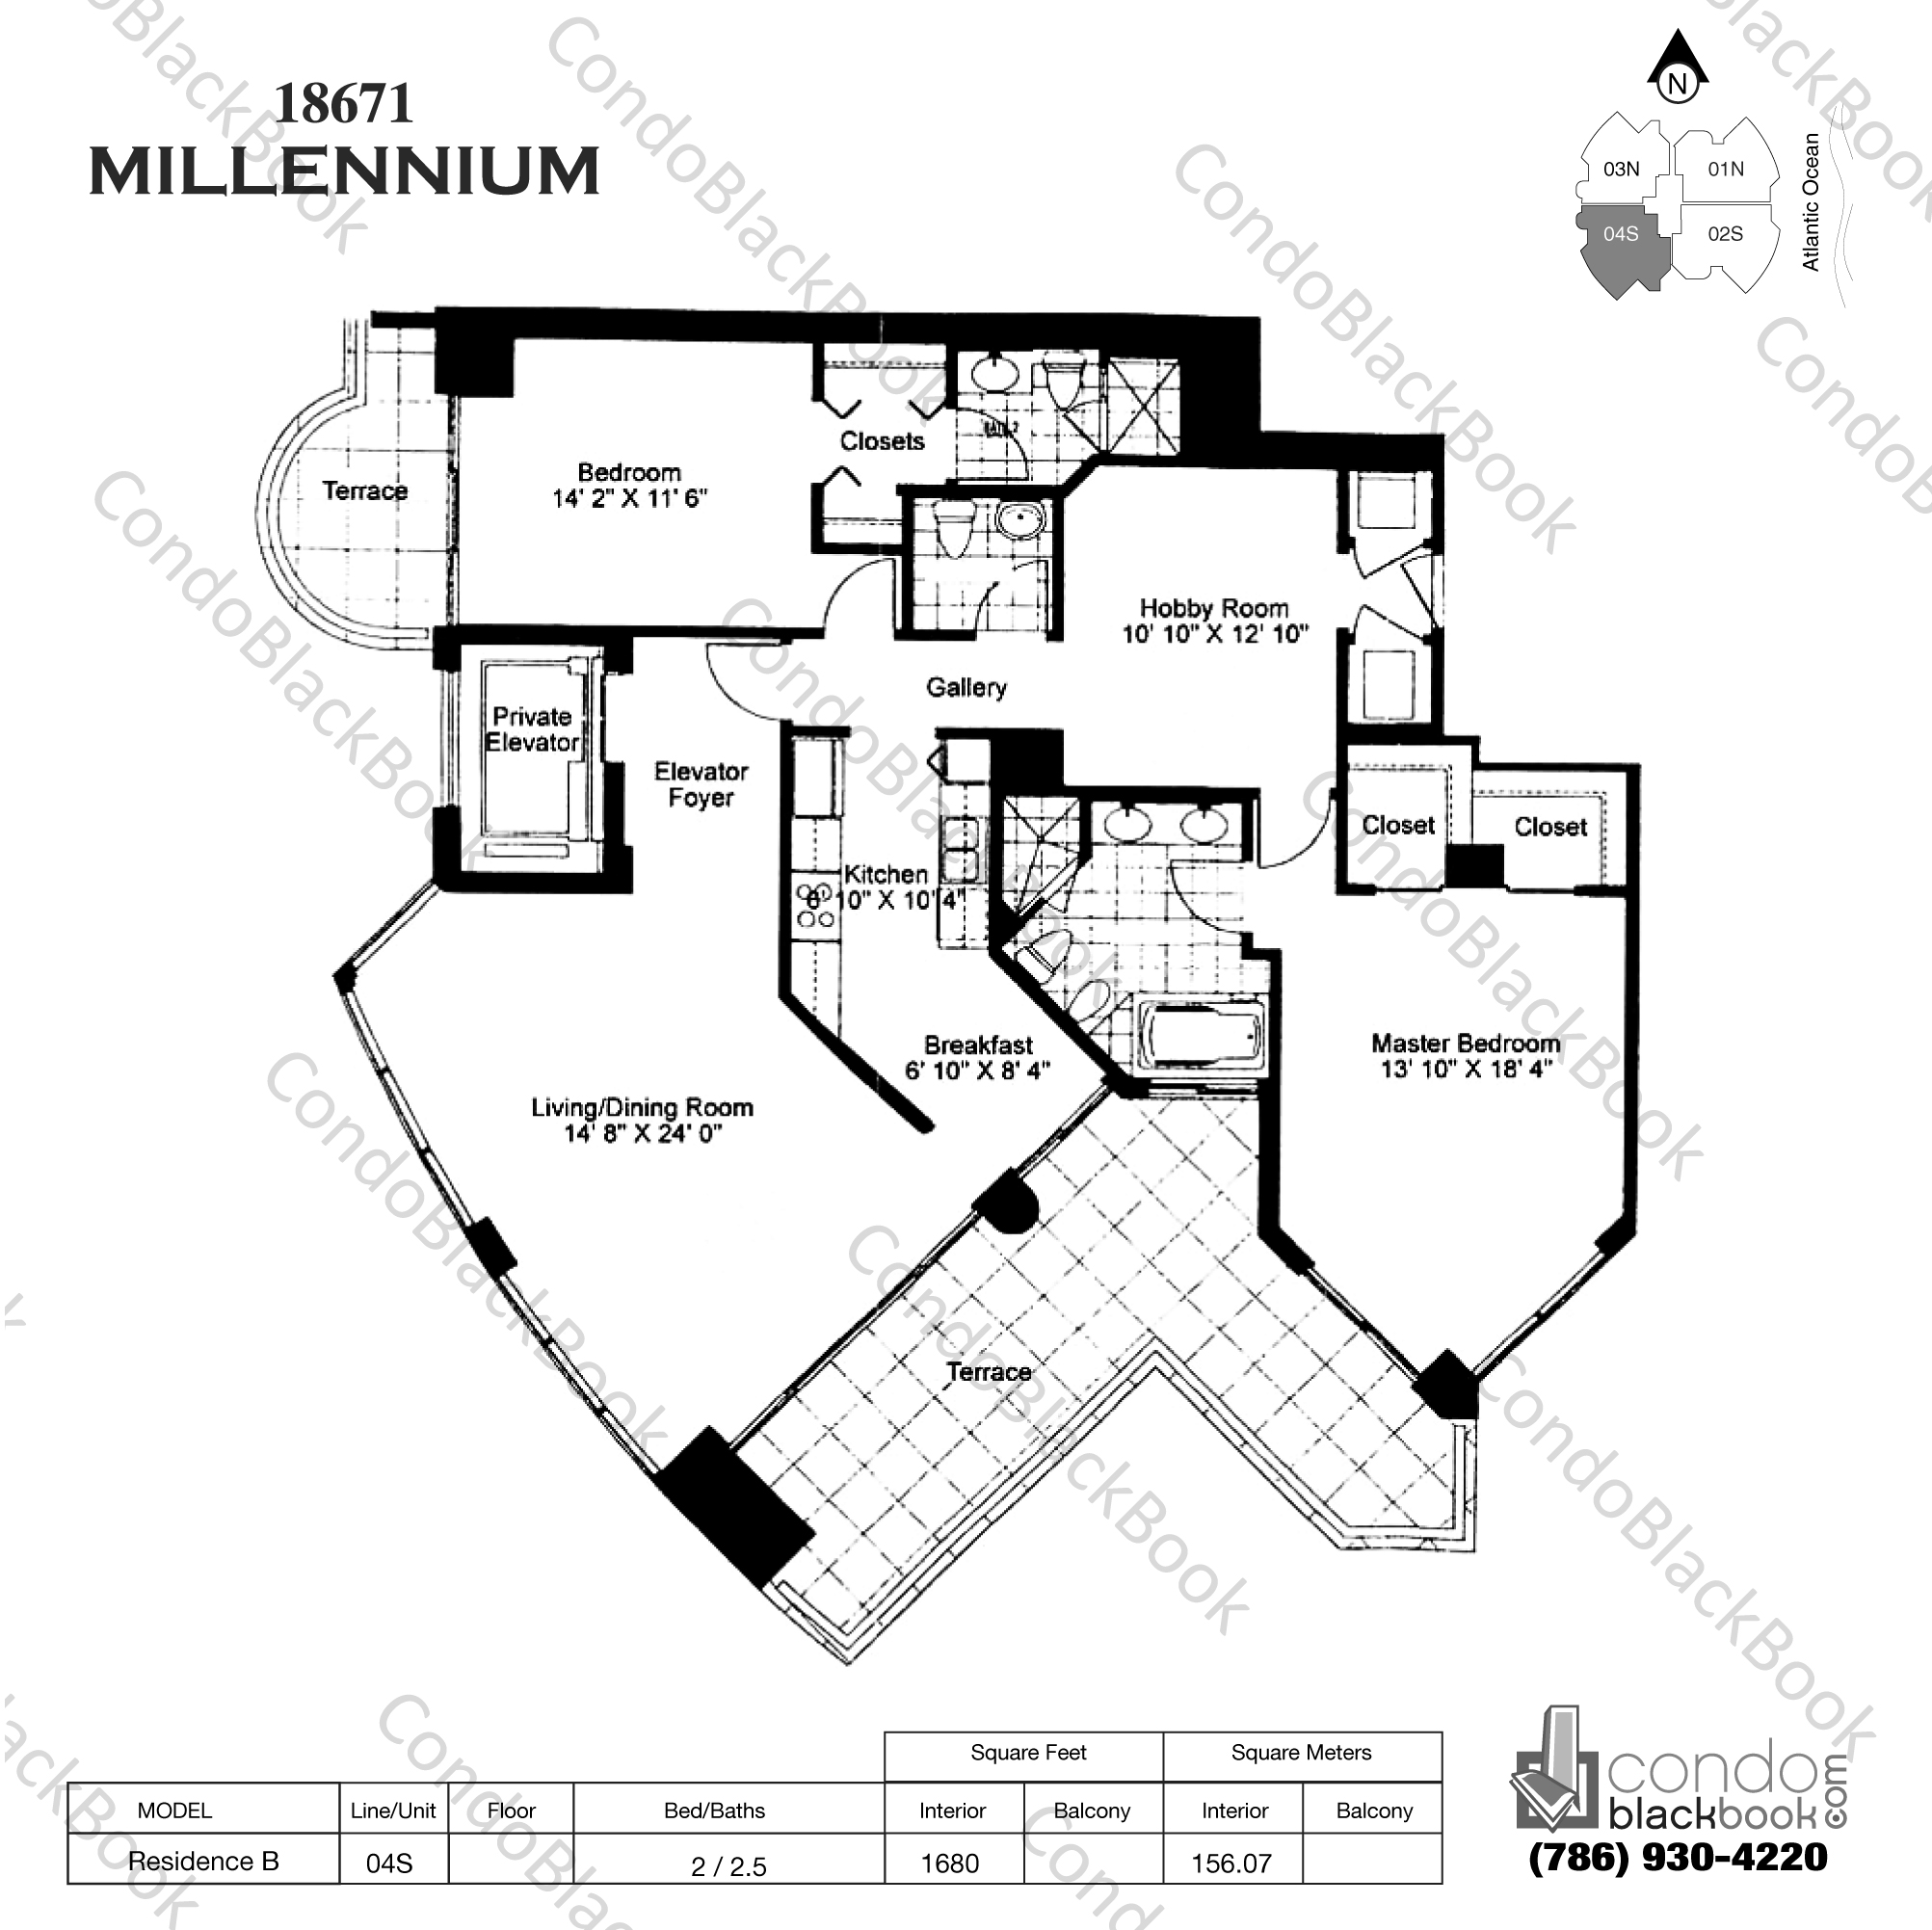 Floor plan for Millennium Sunny Isles Beach, model Res. BS, line 04, 2 / 2.5 bedrooms, 1680 sq ft